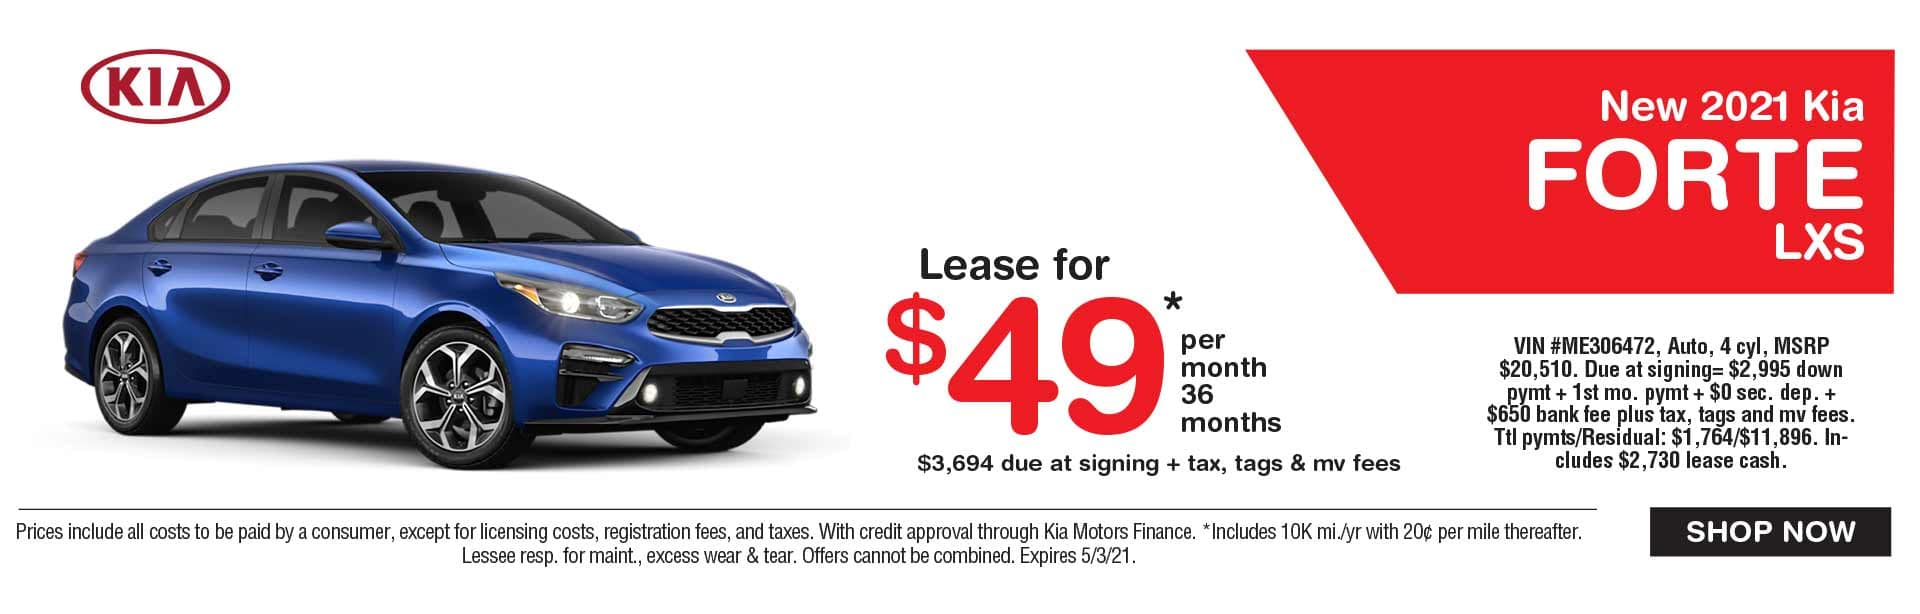 Kia Forte Lease Spring Savings Kia Dealer NJ near me